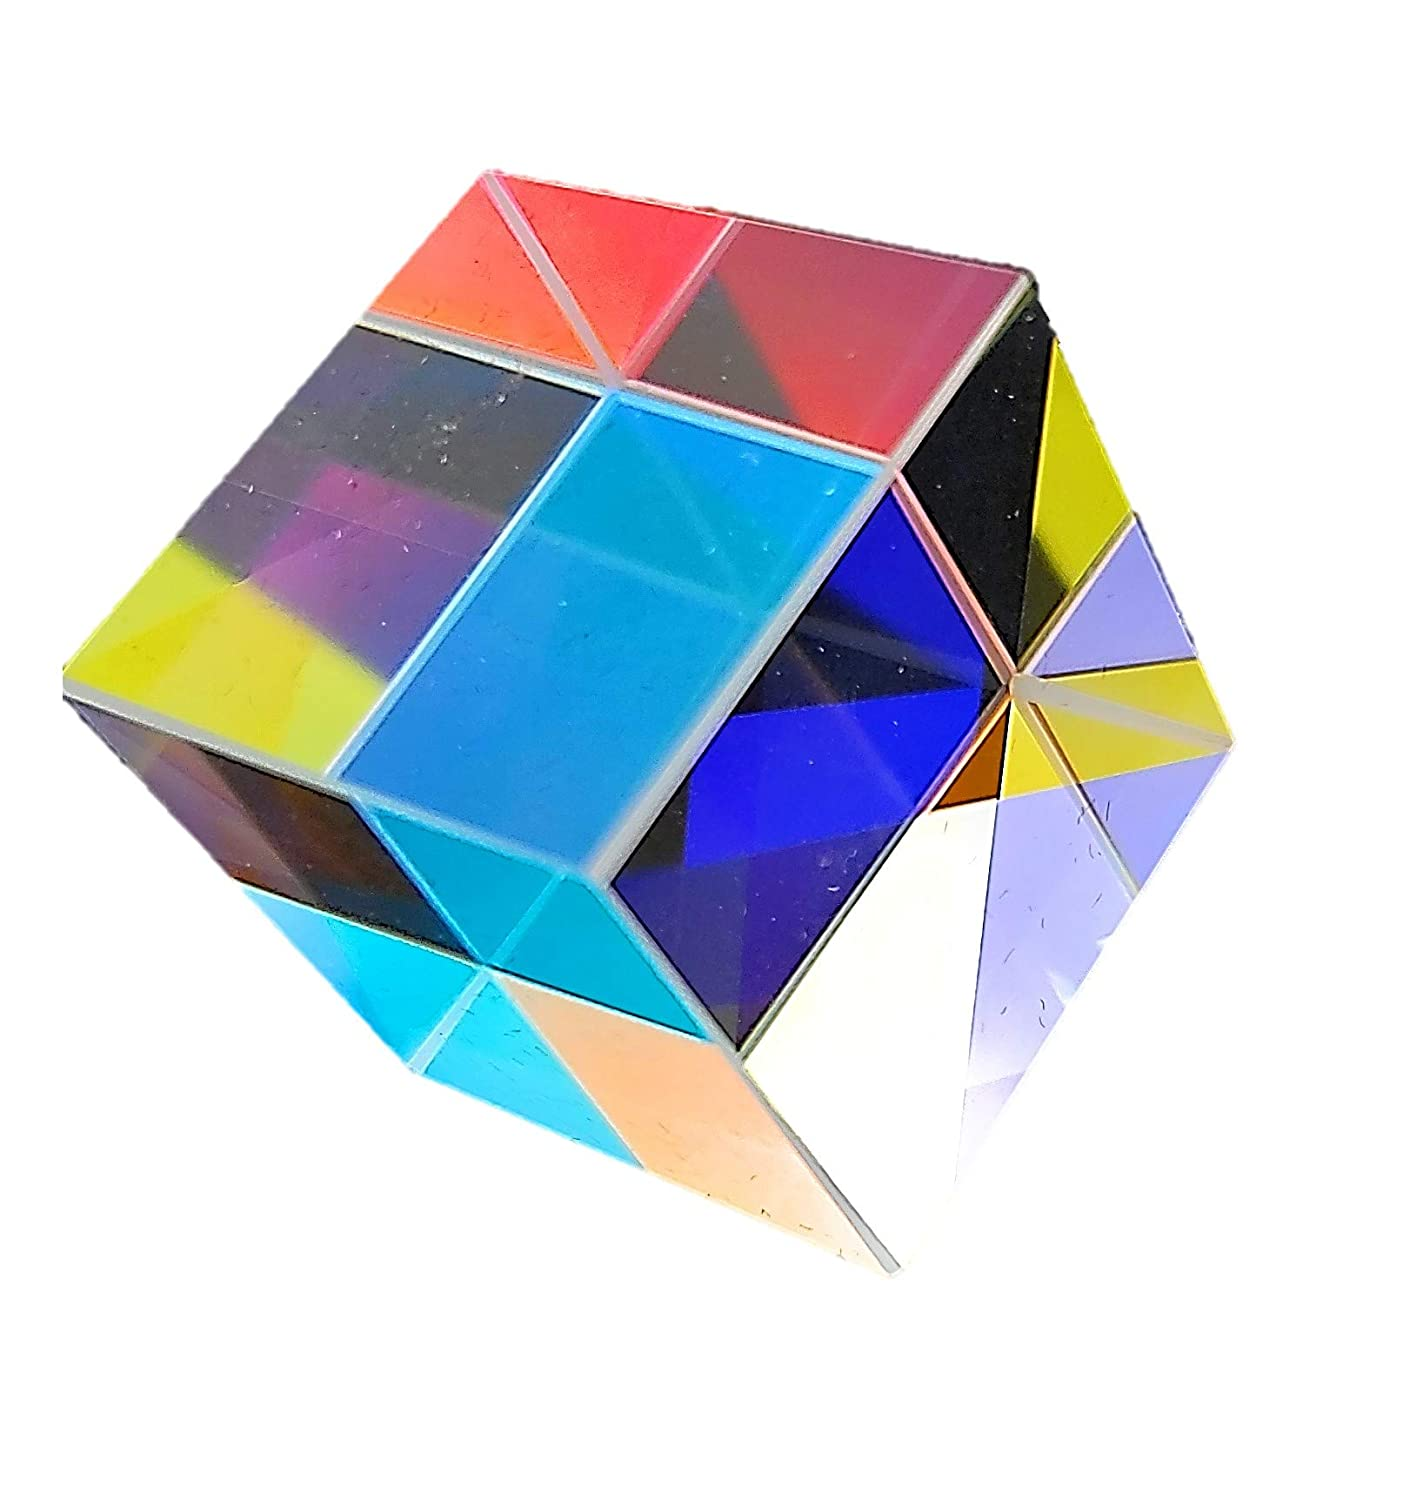 Akozon Optical Glass Prism Size 3 Optical Glass Lens Pyramid Shape Colored Prism for Physics and Research Decoration